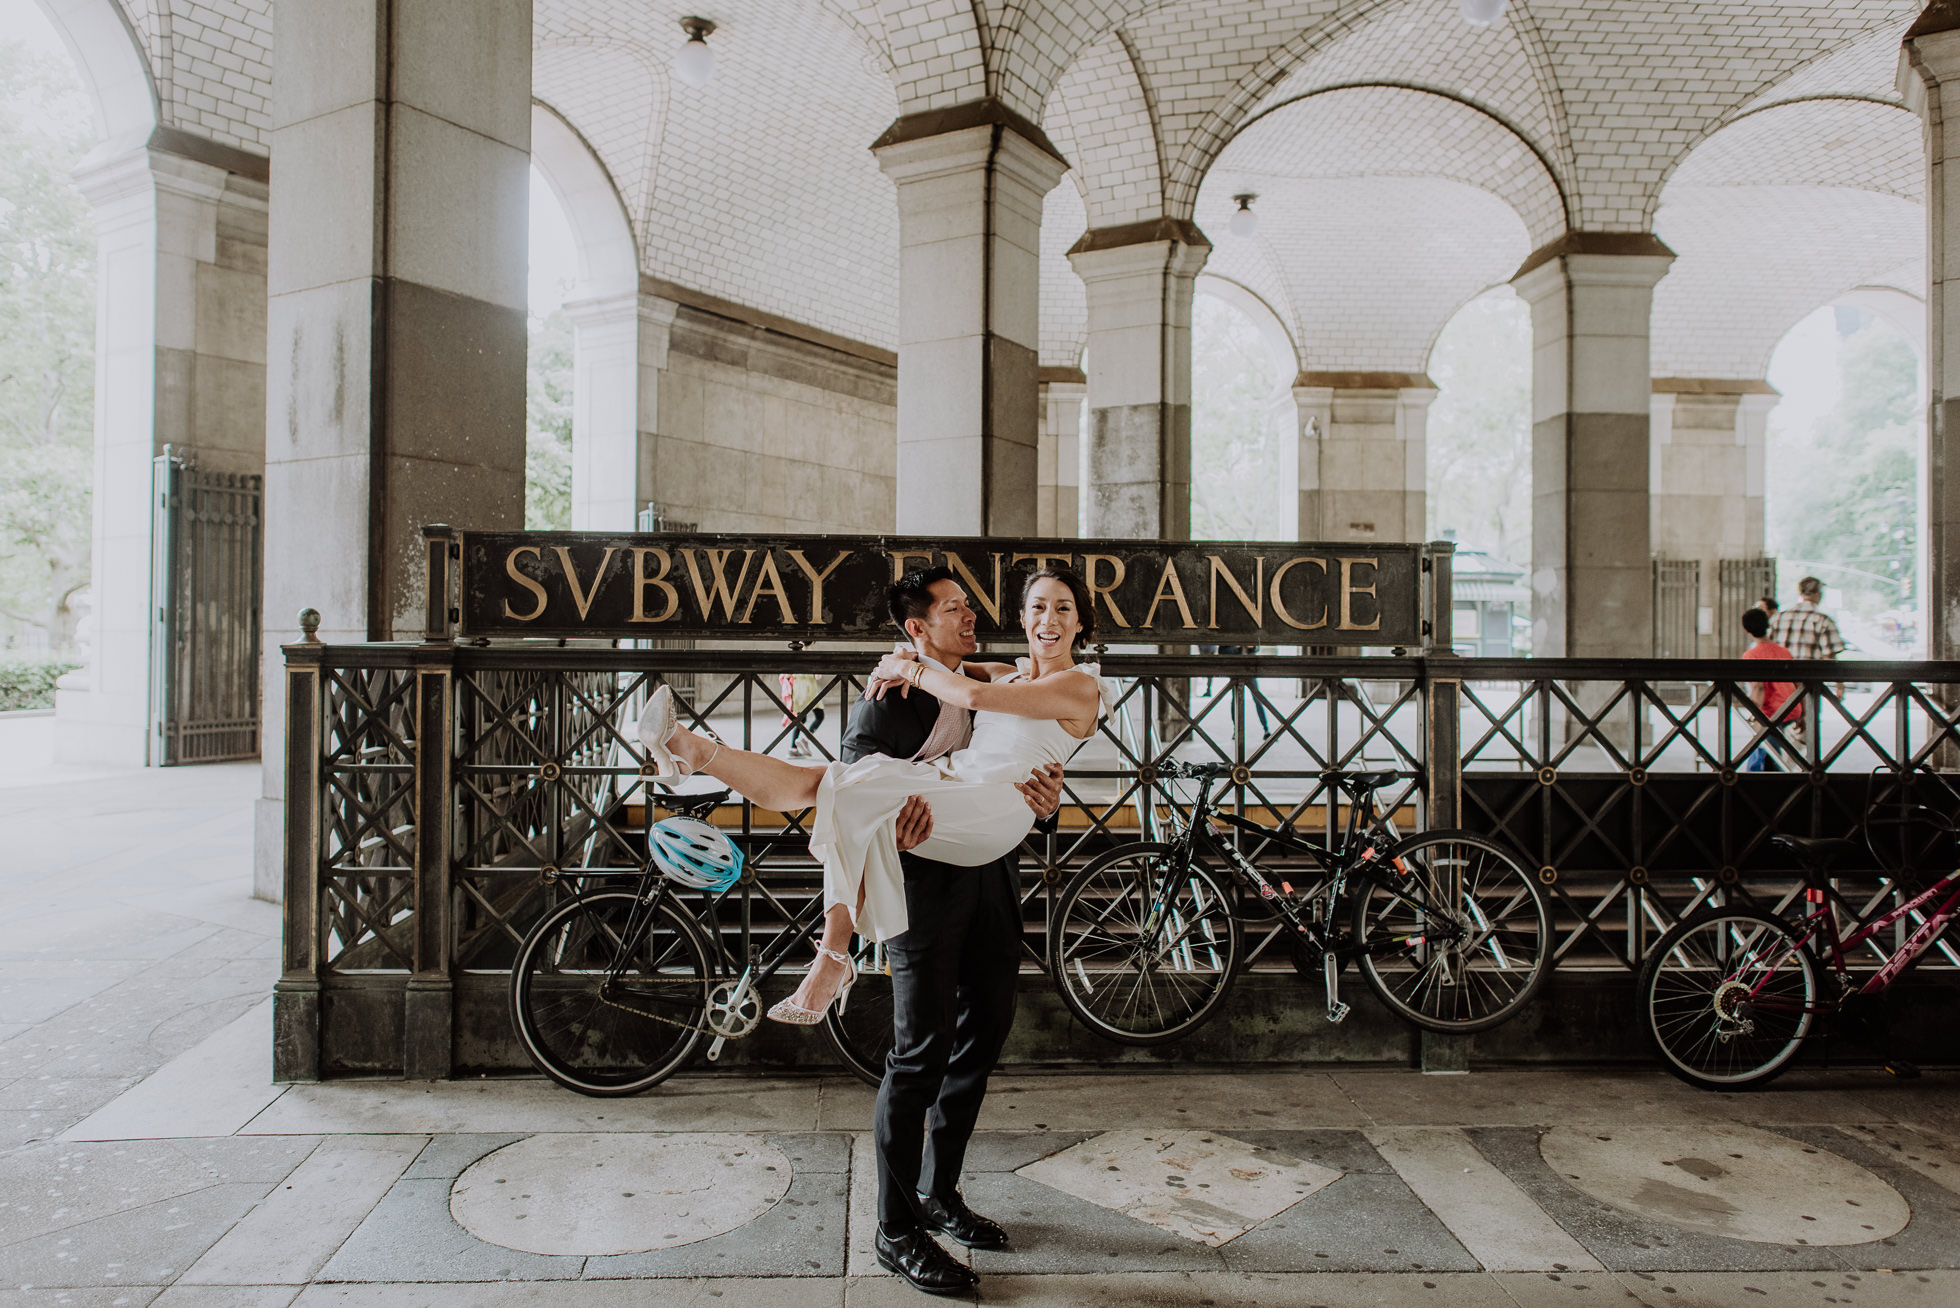 NYC subway elopement photos